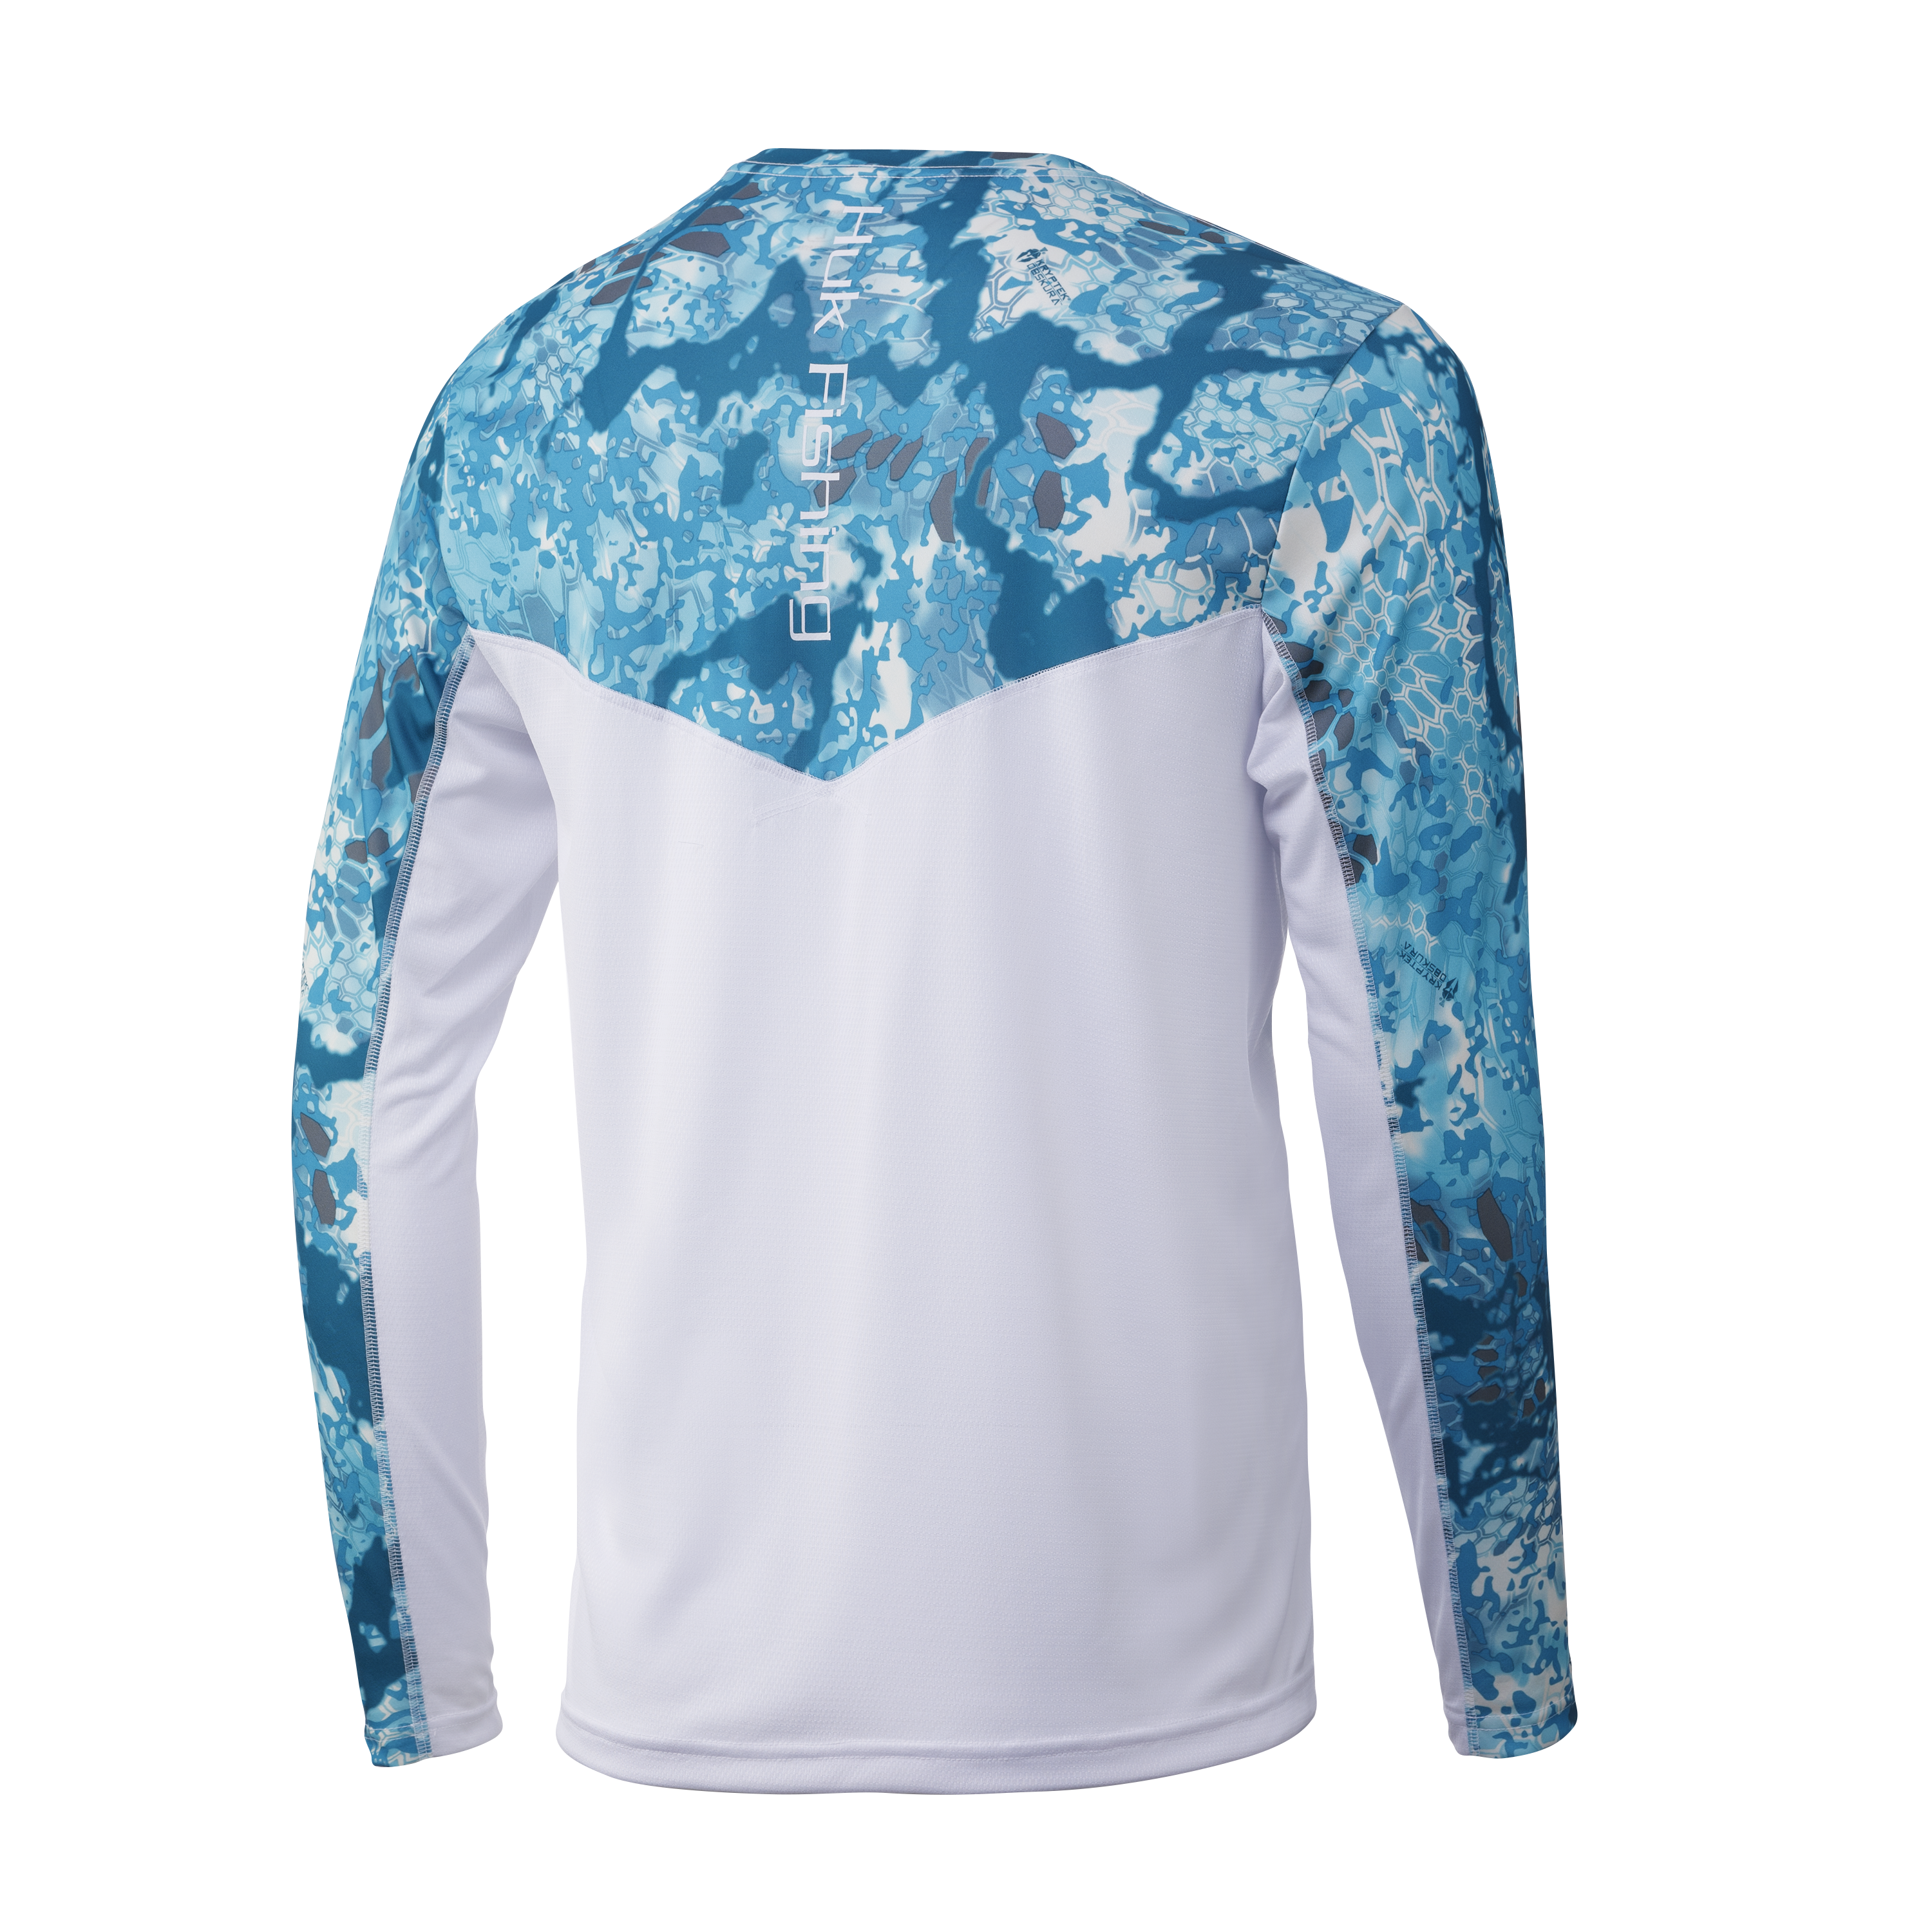 HUK Mens Kryptek Icon X Long Sleeve Long Sleeve Performance Fishing Shirt with 30 UPF Sun Protection /& Reflective Coating